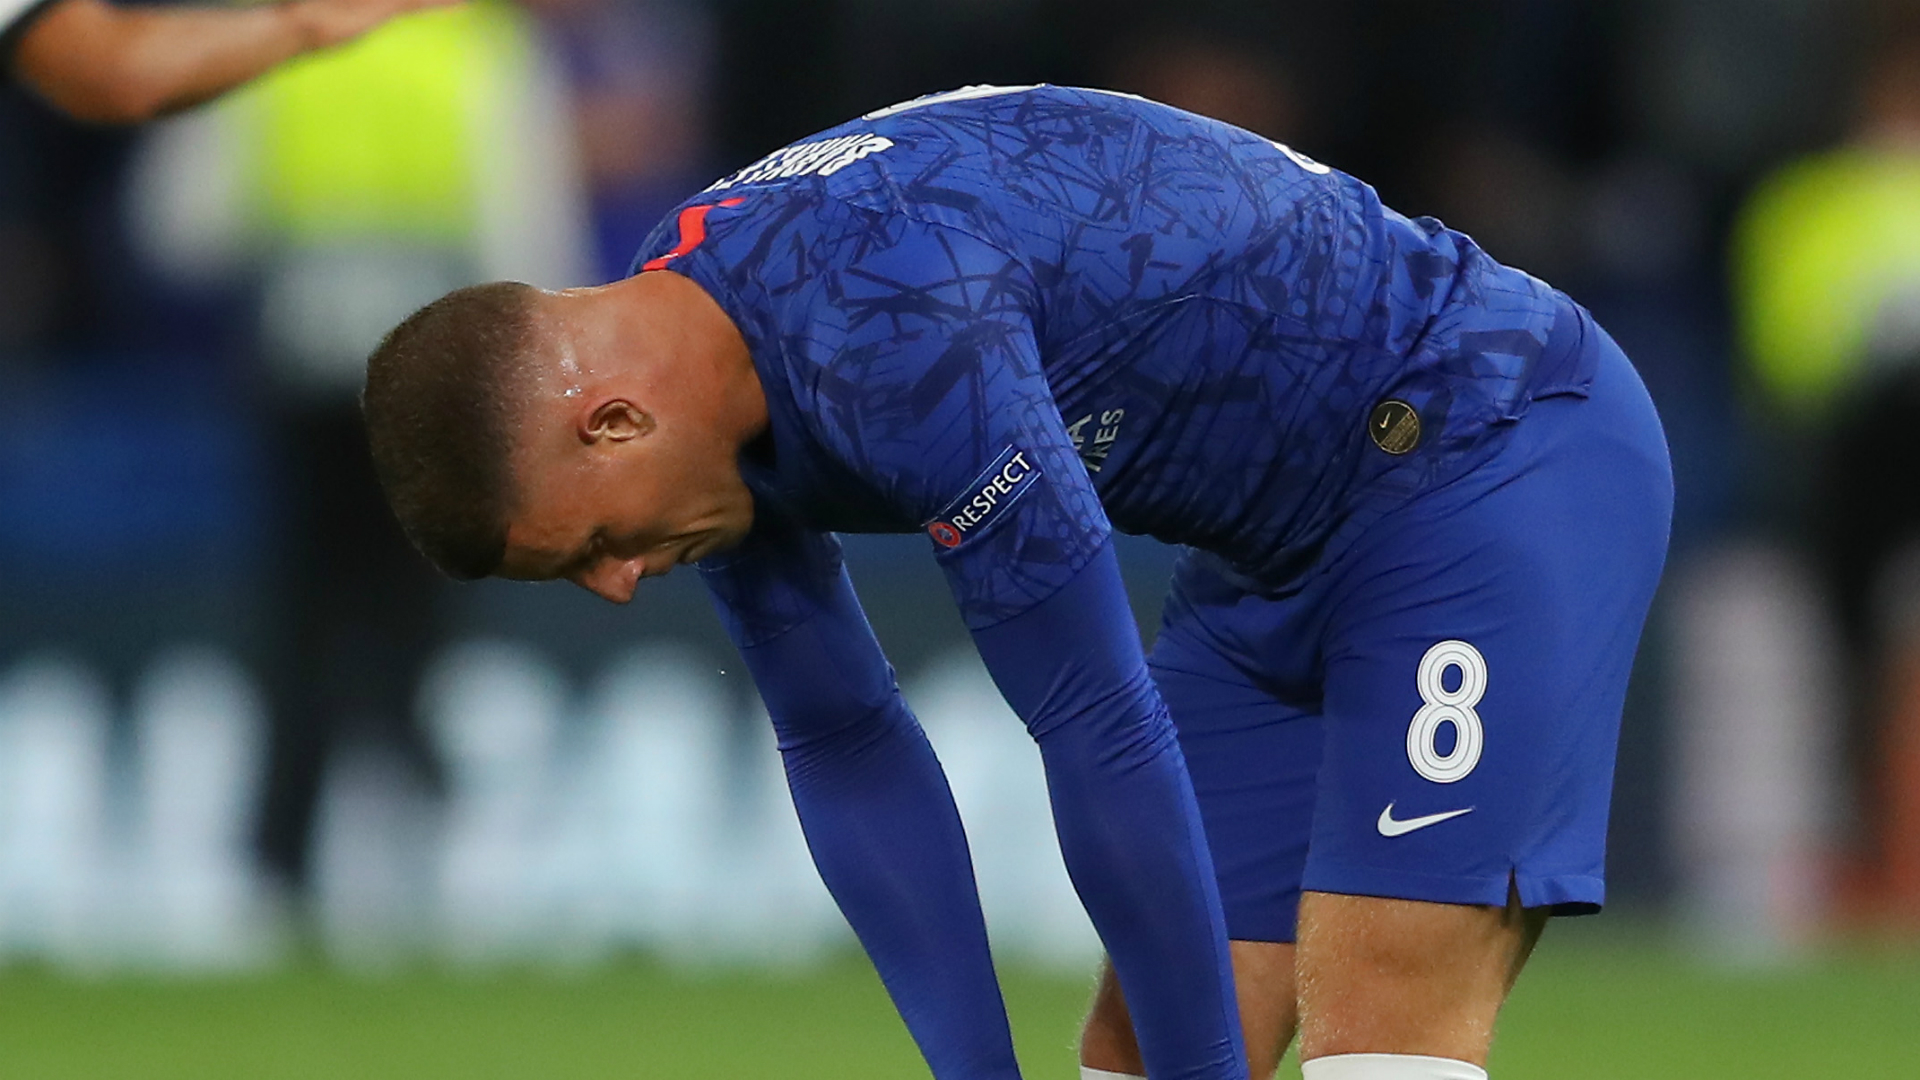 Lampard accuses Barkley of being 'naive' after late night taxi row